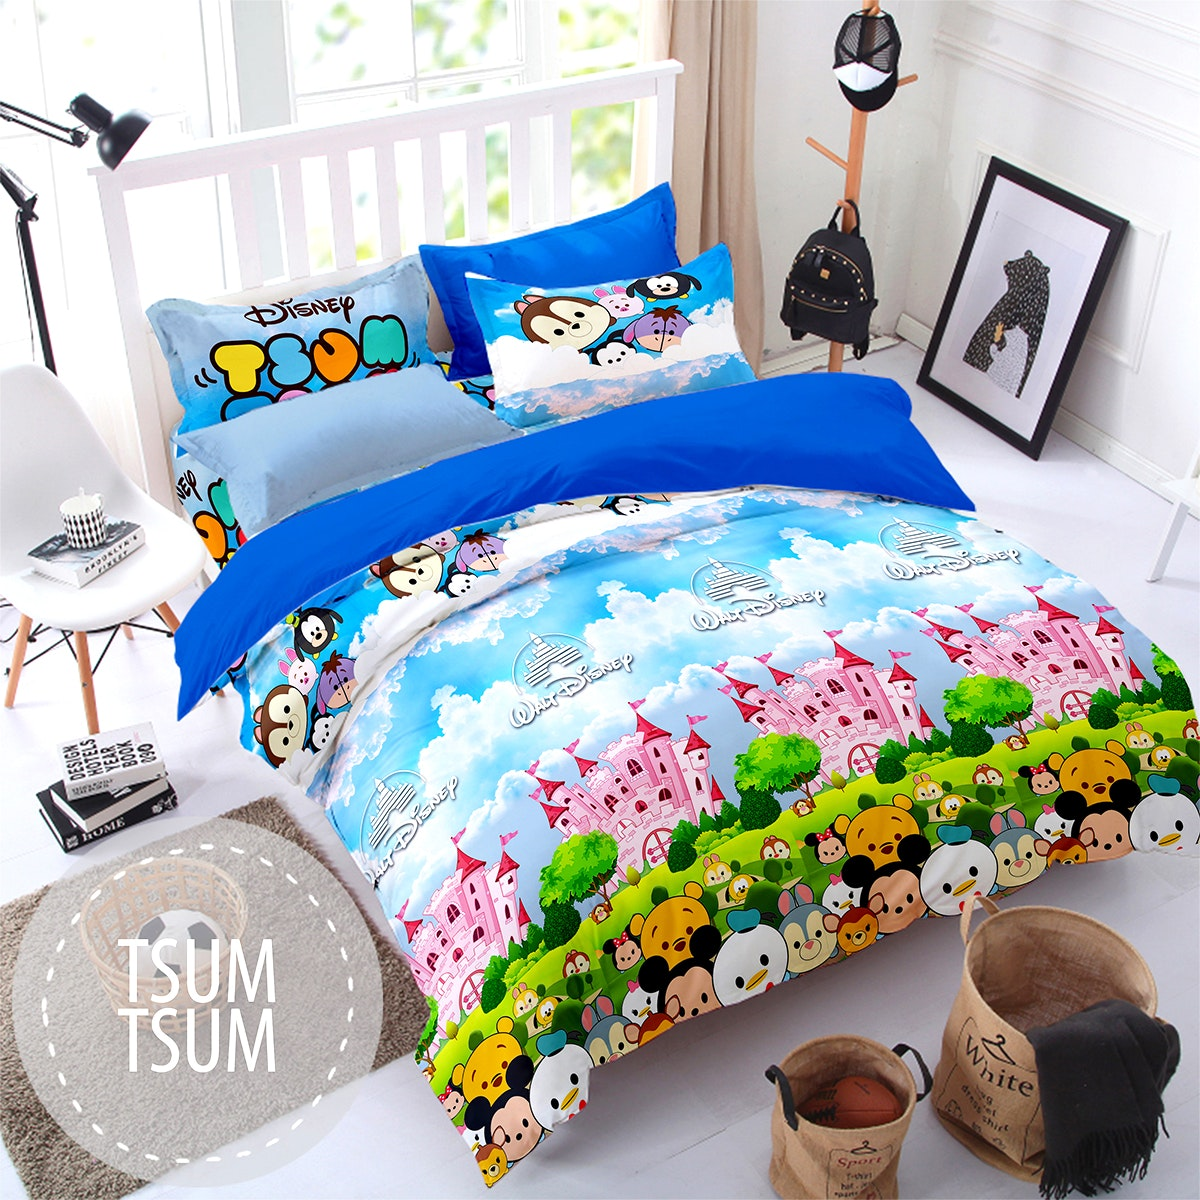 Pesona Sprei Disperse Tsum Tsum Disney uk 120 T 20